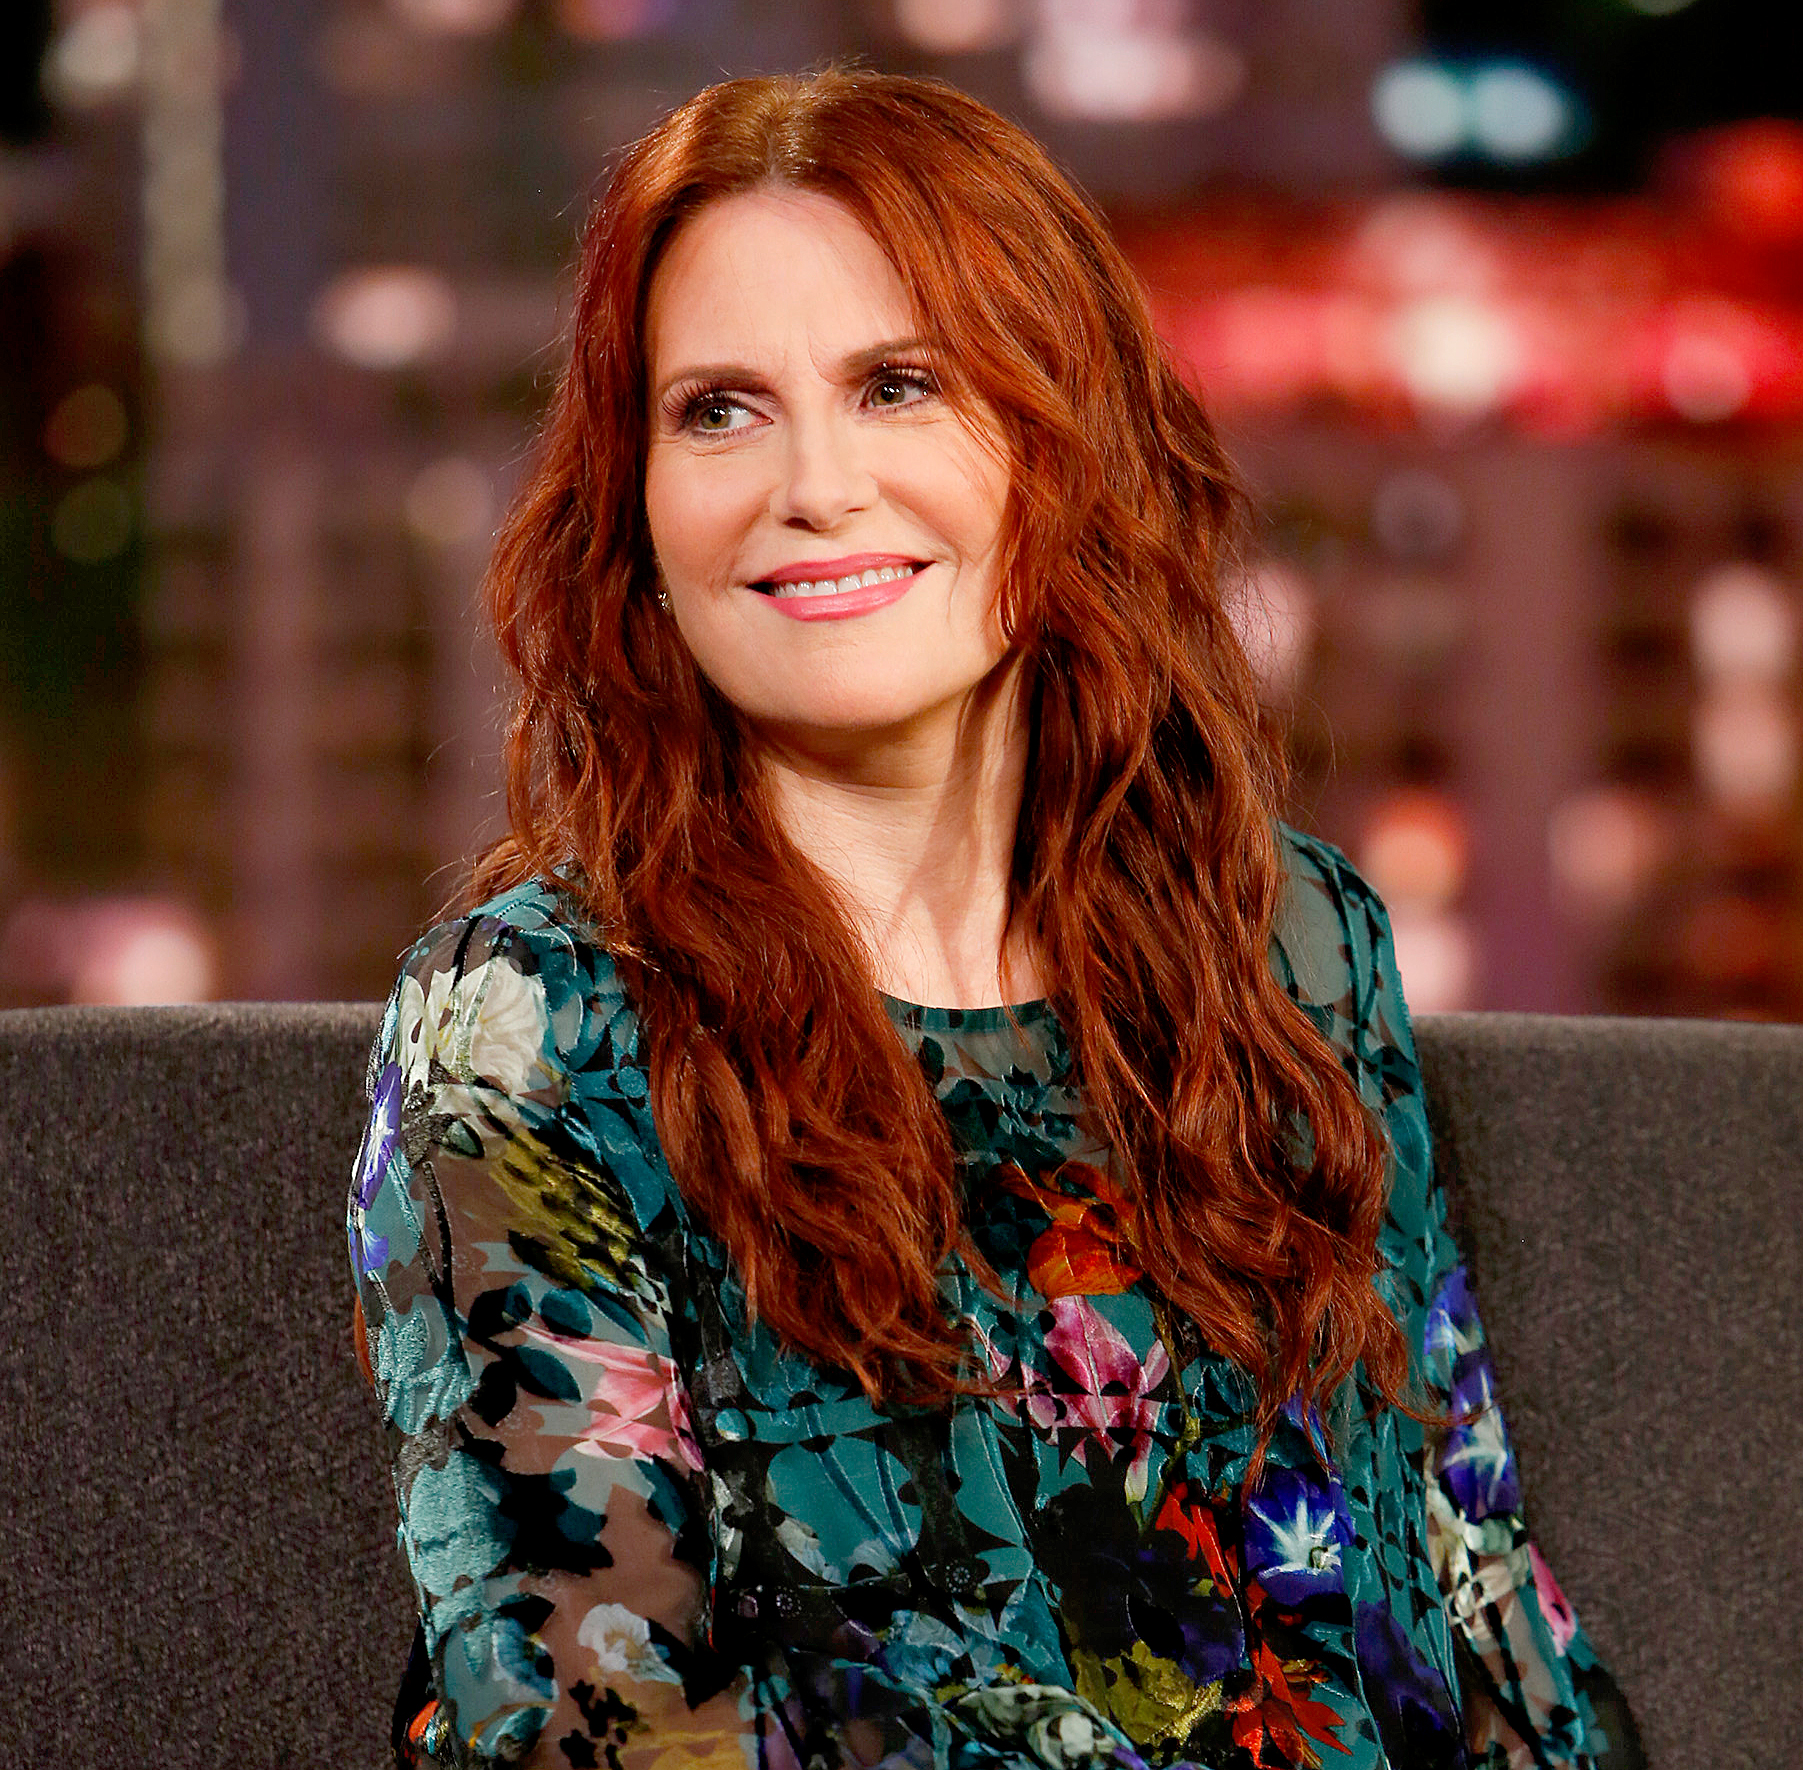 Megan-Mullally-hosting-sag-awards - Will & Grace star Megan Mullally is set to host the 2019 event, following in the shoes of last year's Kristen Bell . The actress, 60, opened up to The Hollywood Reporter about the hosting duties, joking she may be the oldest woman to ever host.